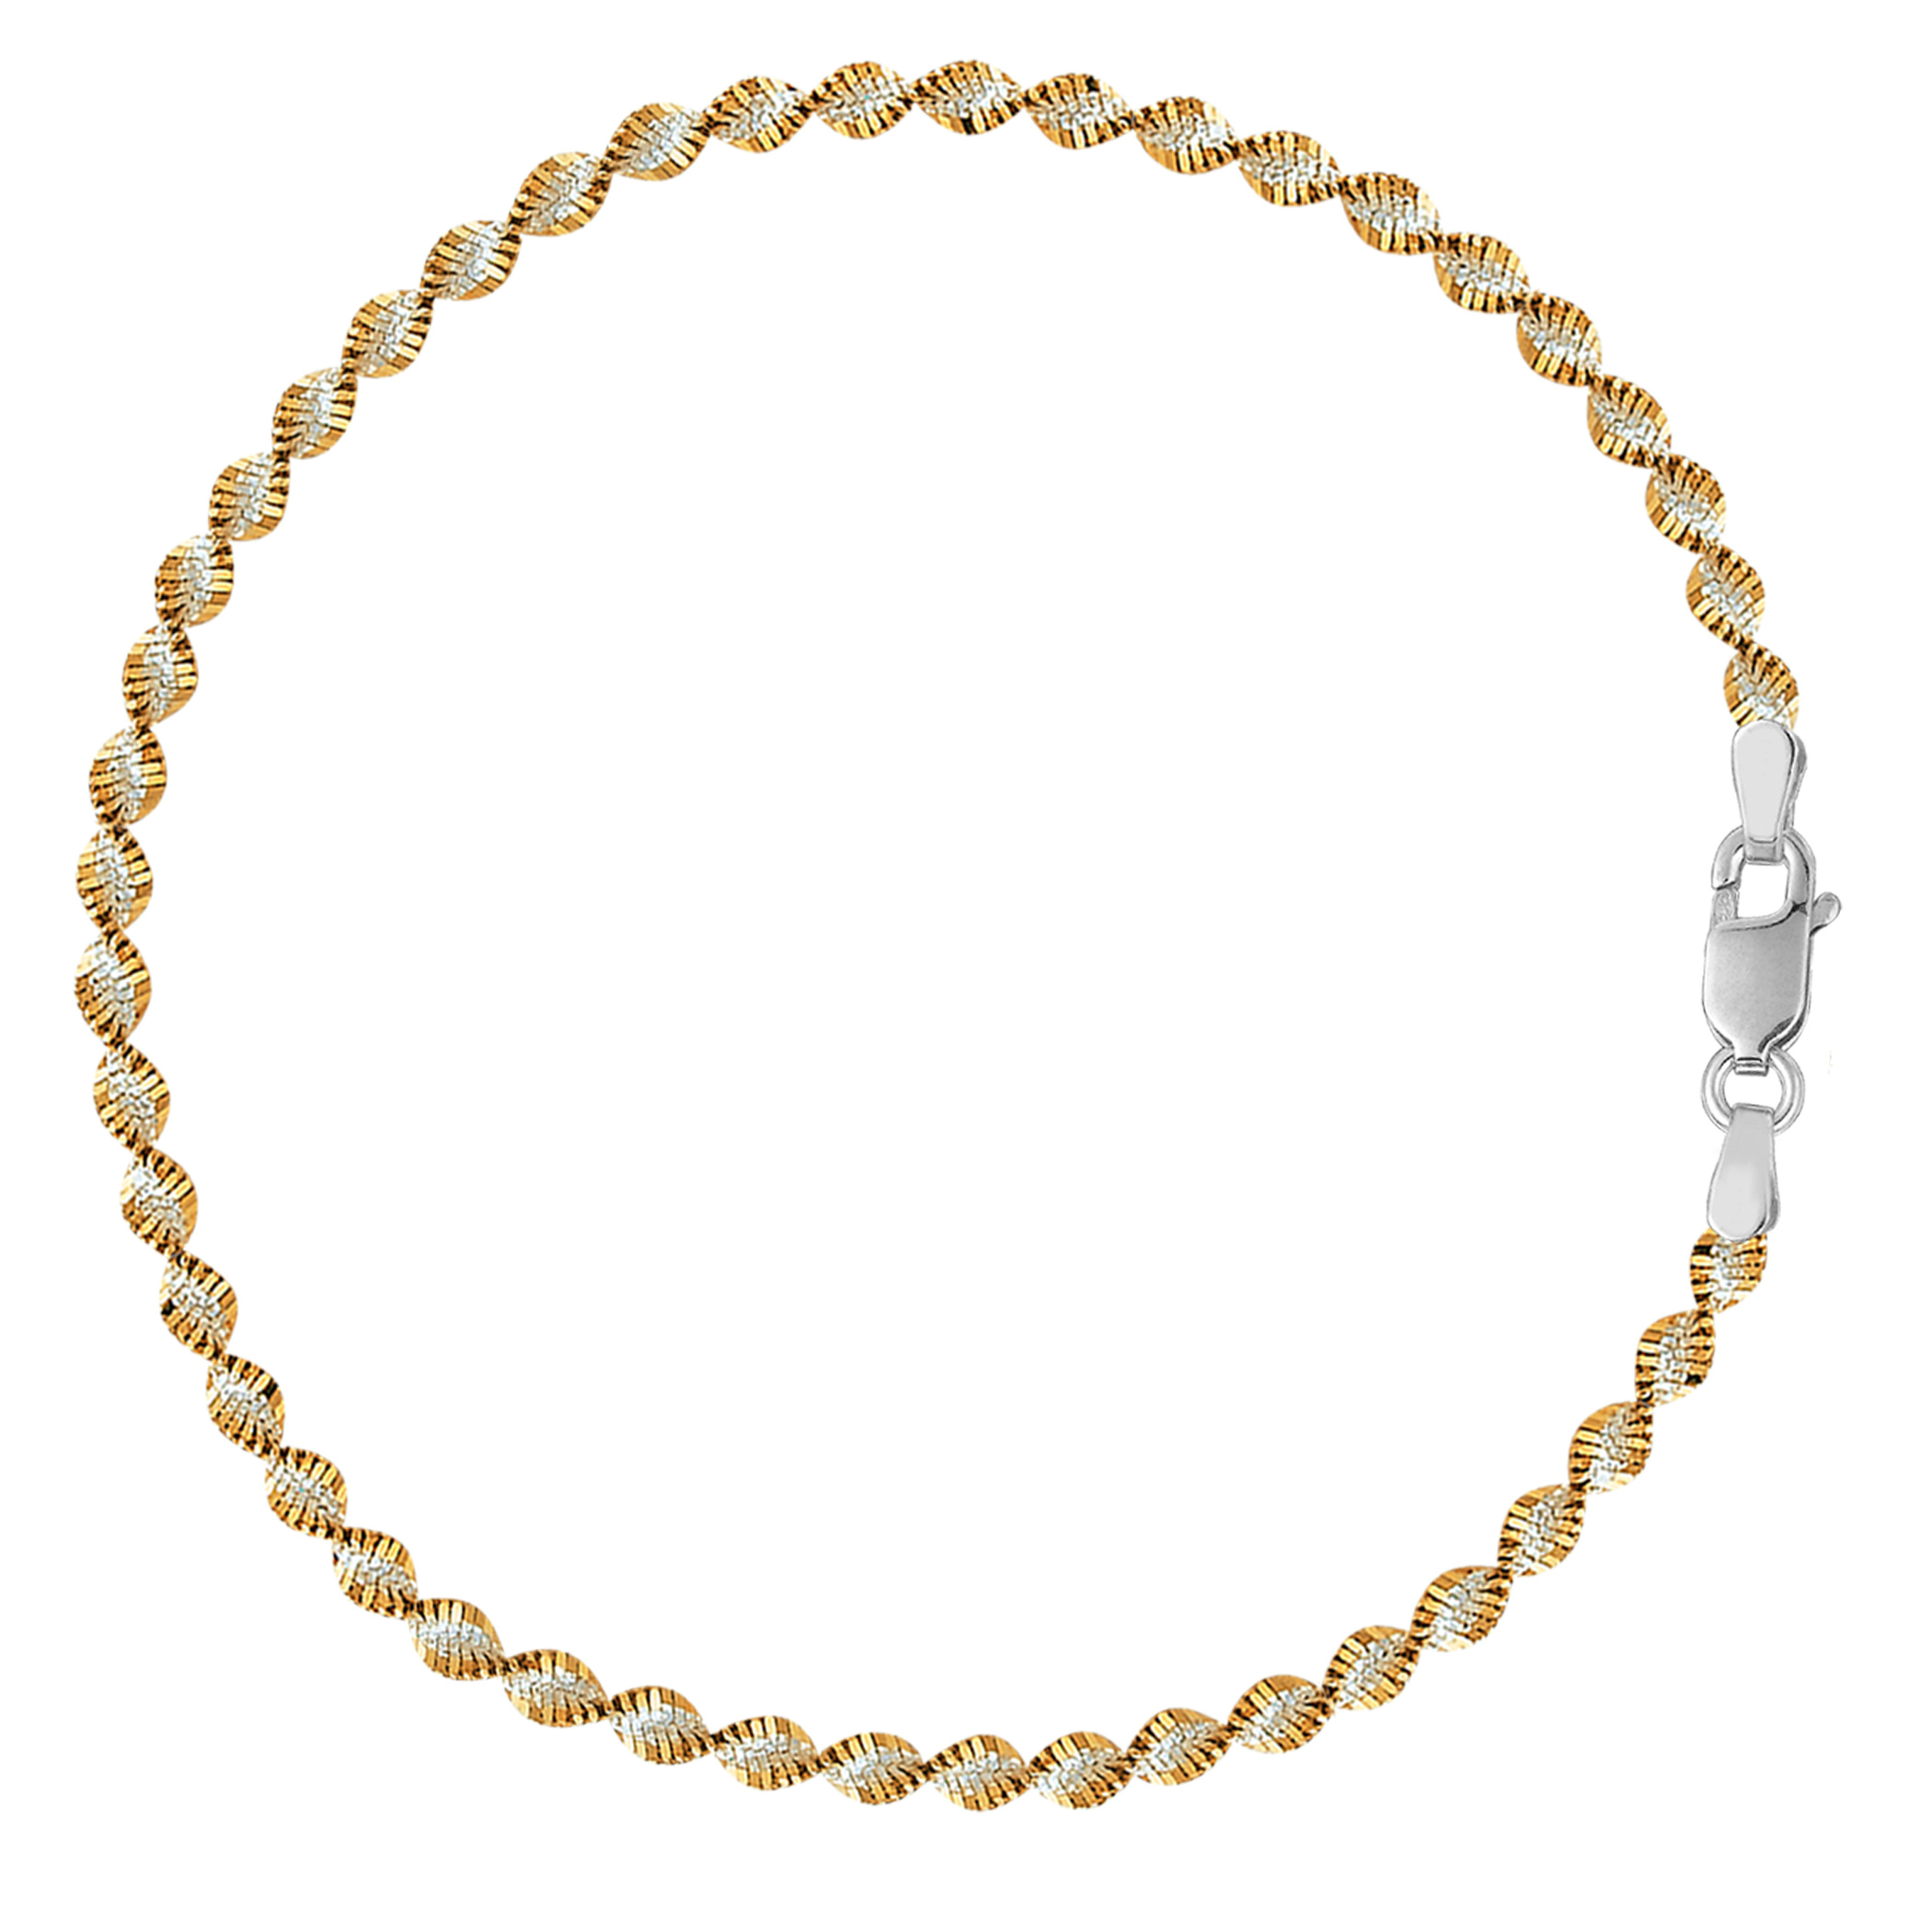 White And Yellow Singapore Style Chain Anklet In Sterling Silver, 11″